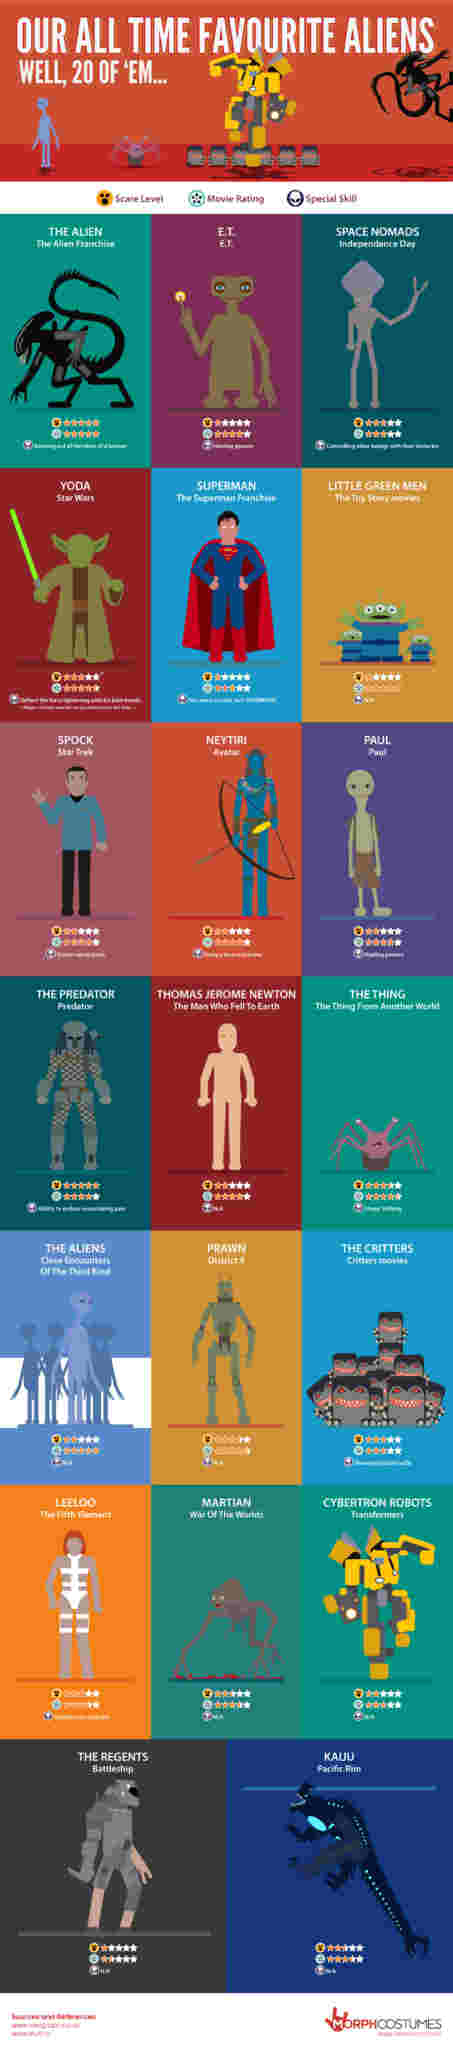 Our-All-Time-Favourite-Aliens-Infographic-1